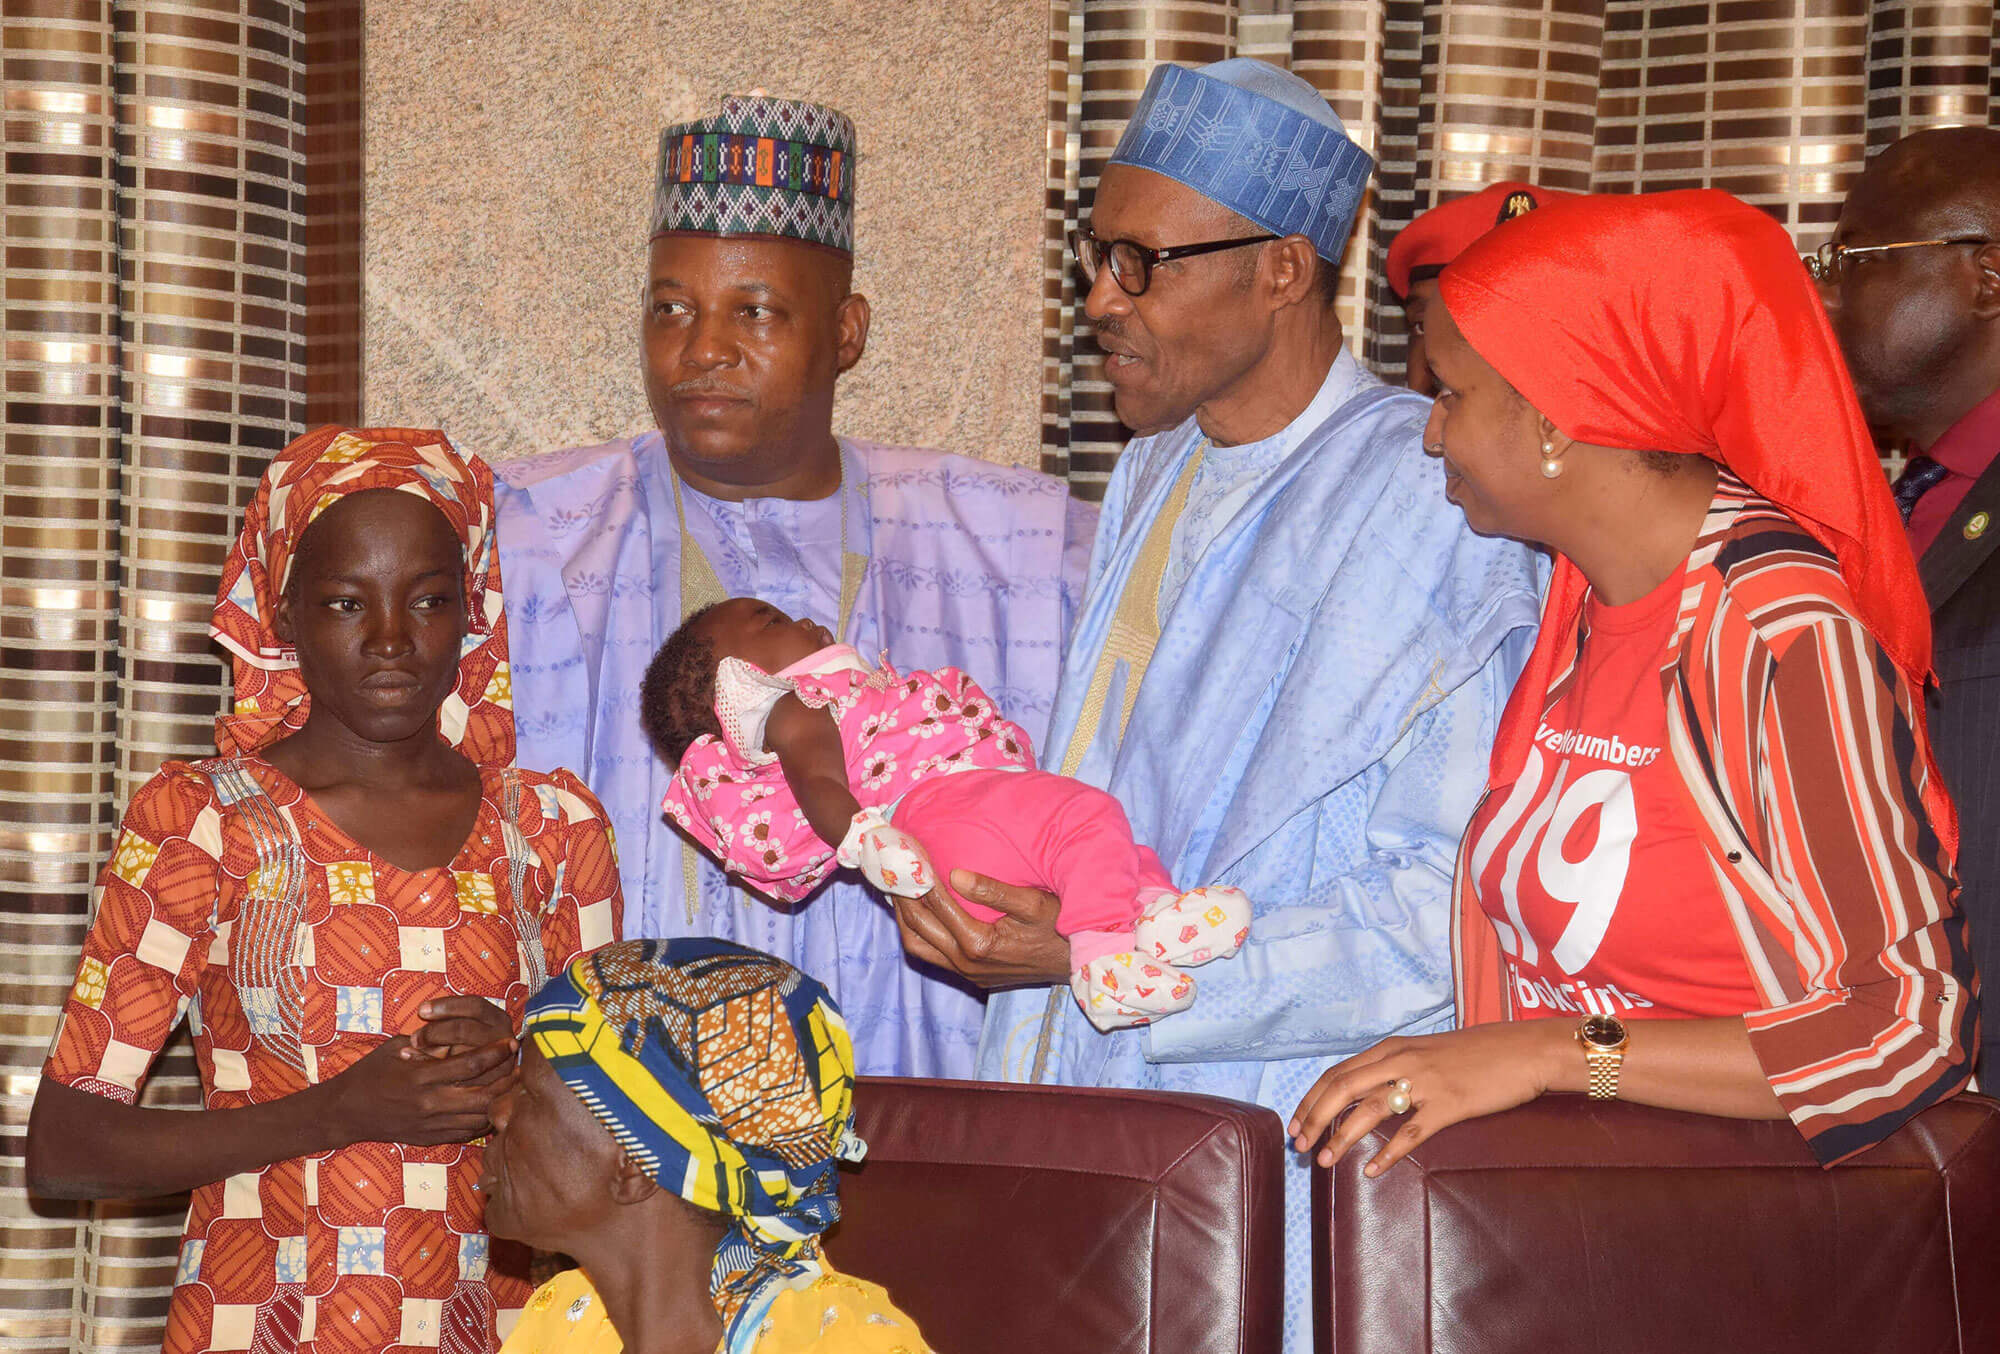 picture of Amina Ali, one of the found schoolgirls with President Muhammadu Buhari